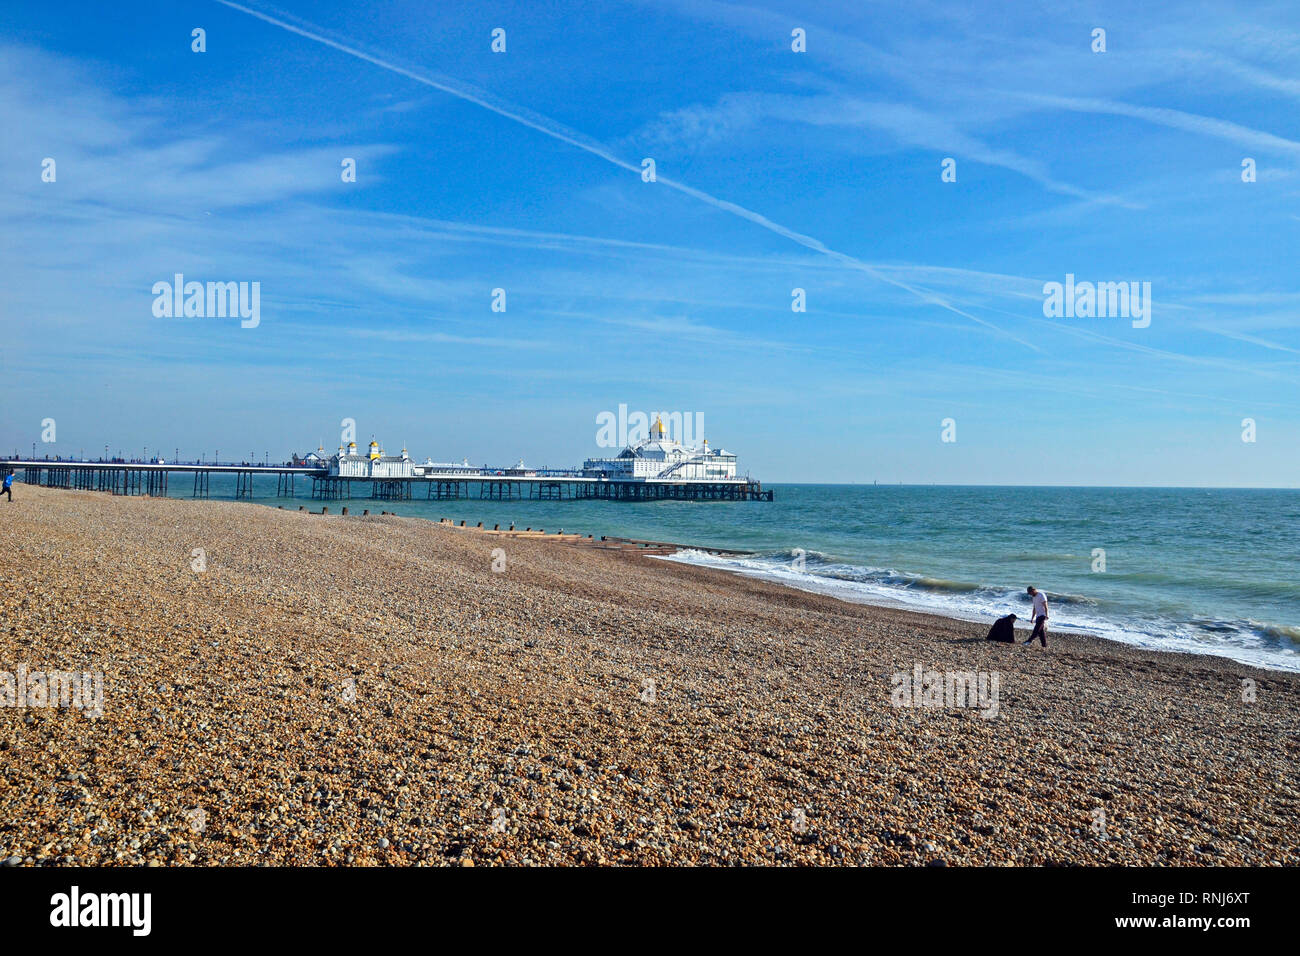 Eastbourne Pier, Eastbourne, East Sussex, UK. Brilliant sunshine brings people out to enjoy the seafront in February. View from the promenade. Stock Photo